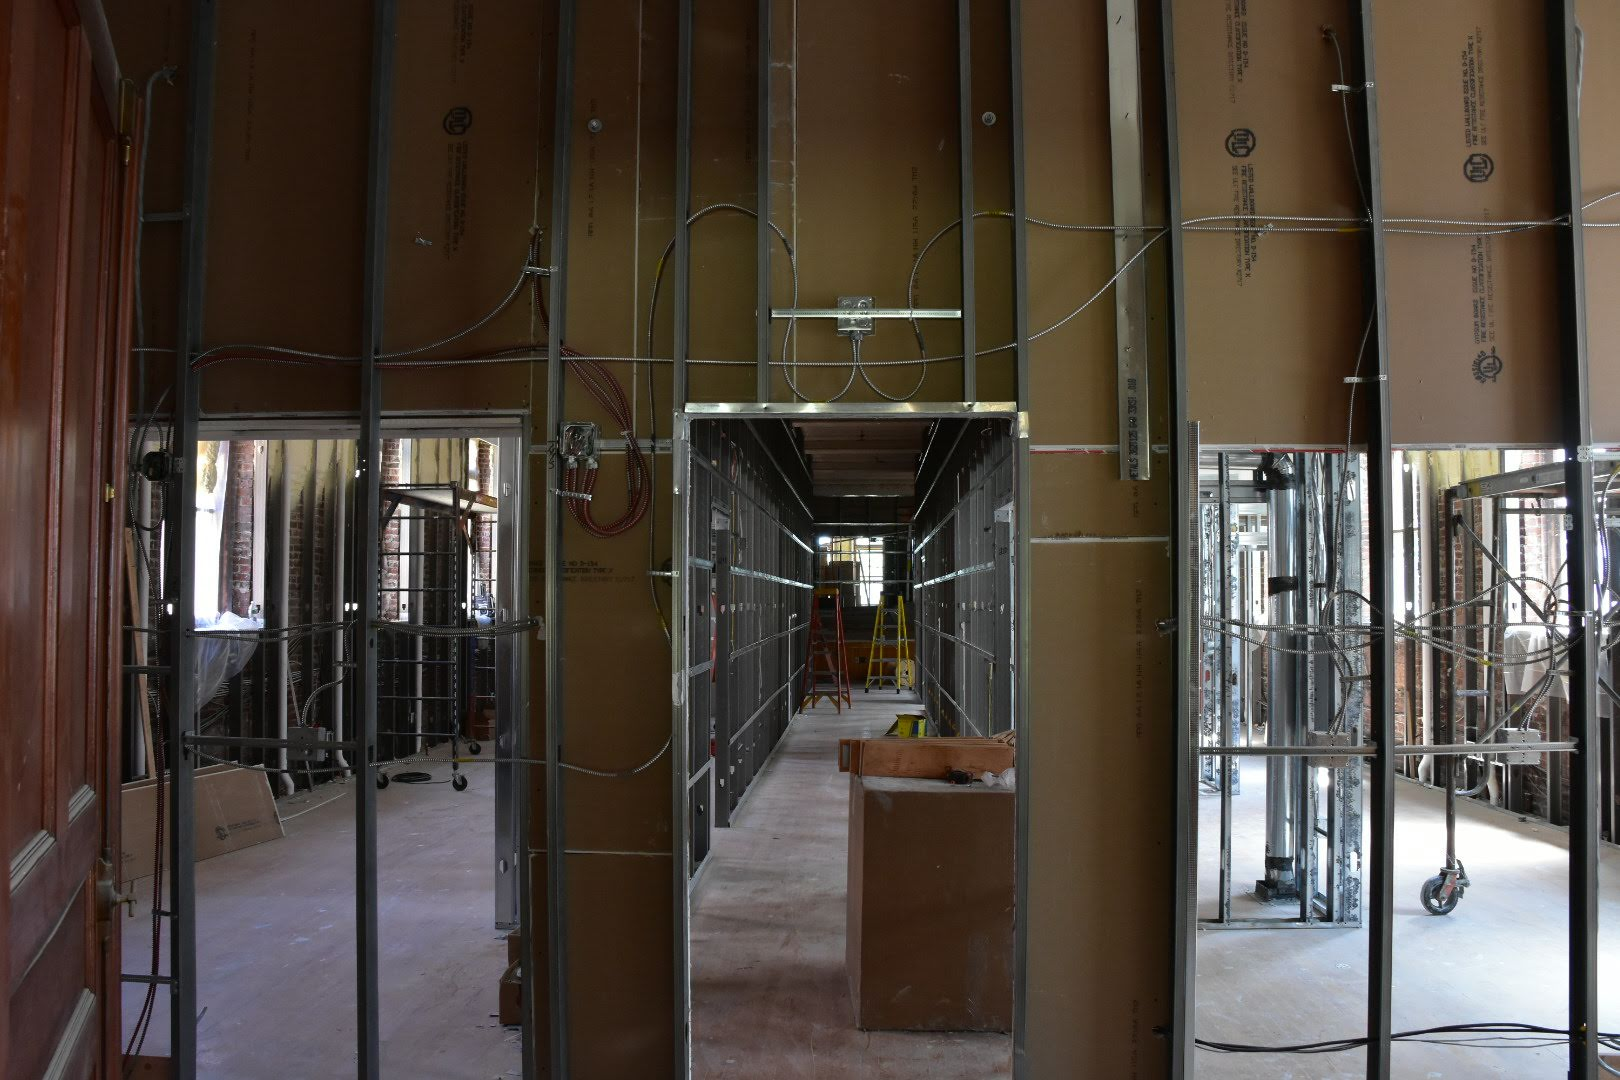 16 Motherhouse basement underconstruction.jpg